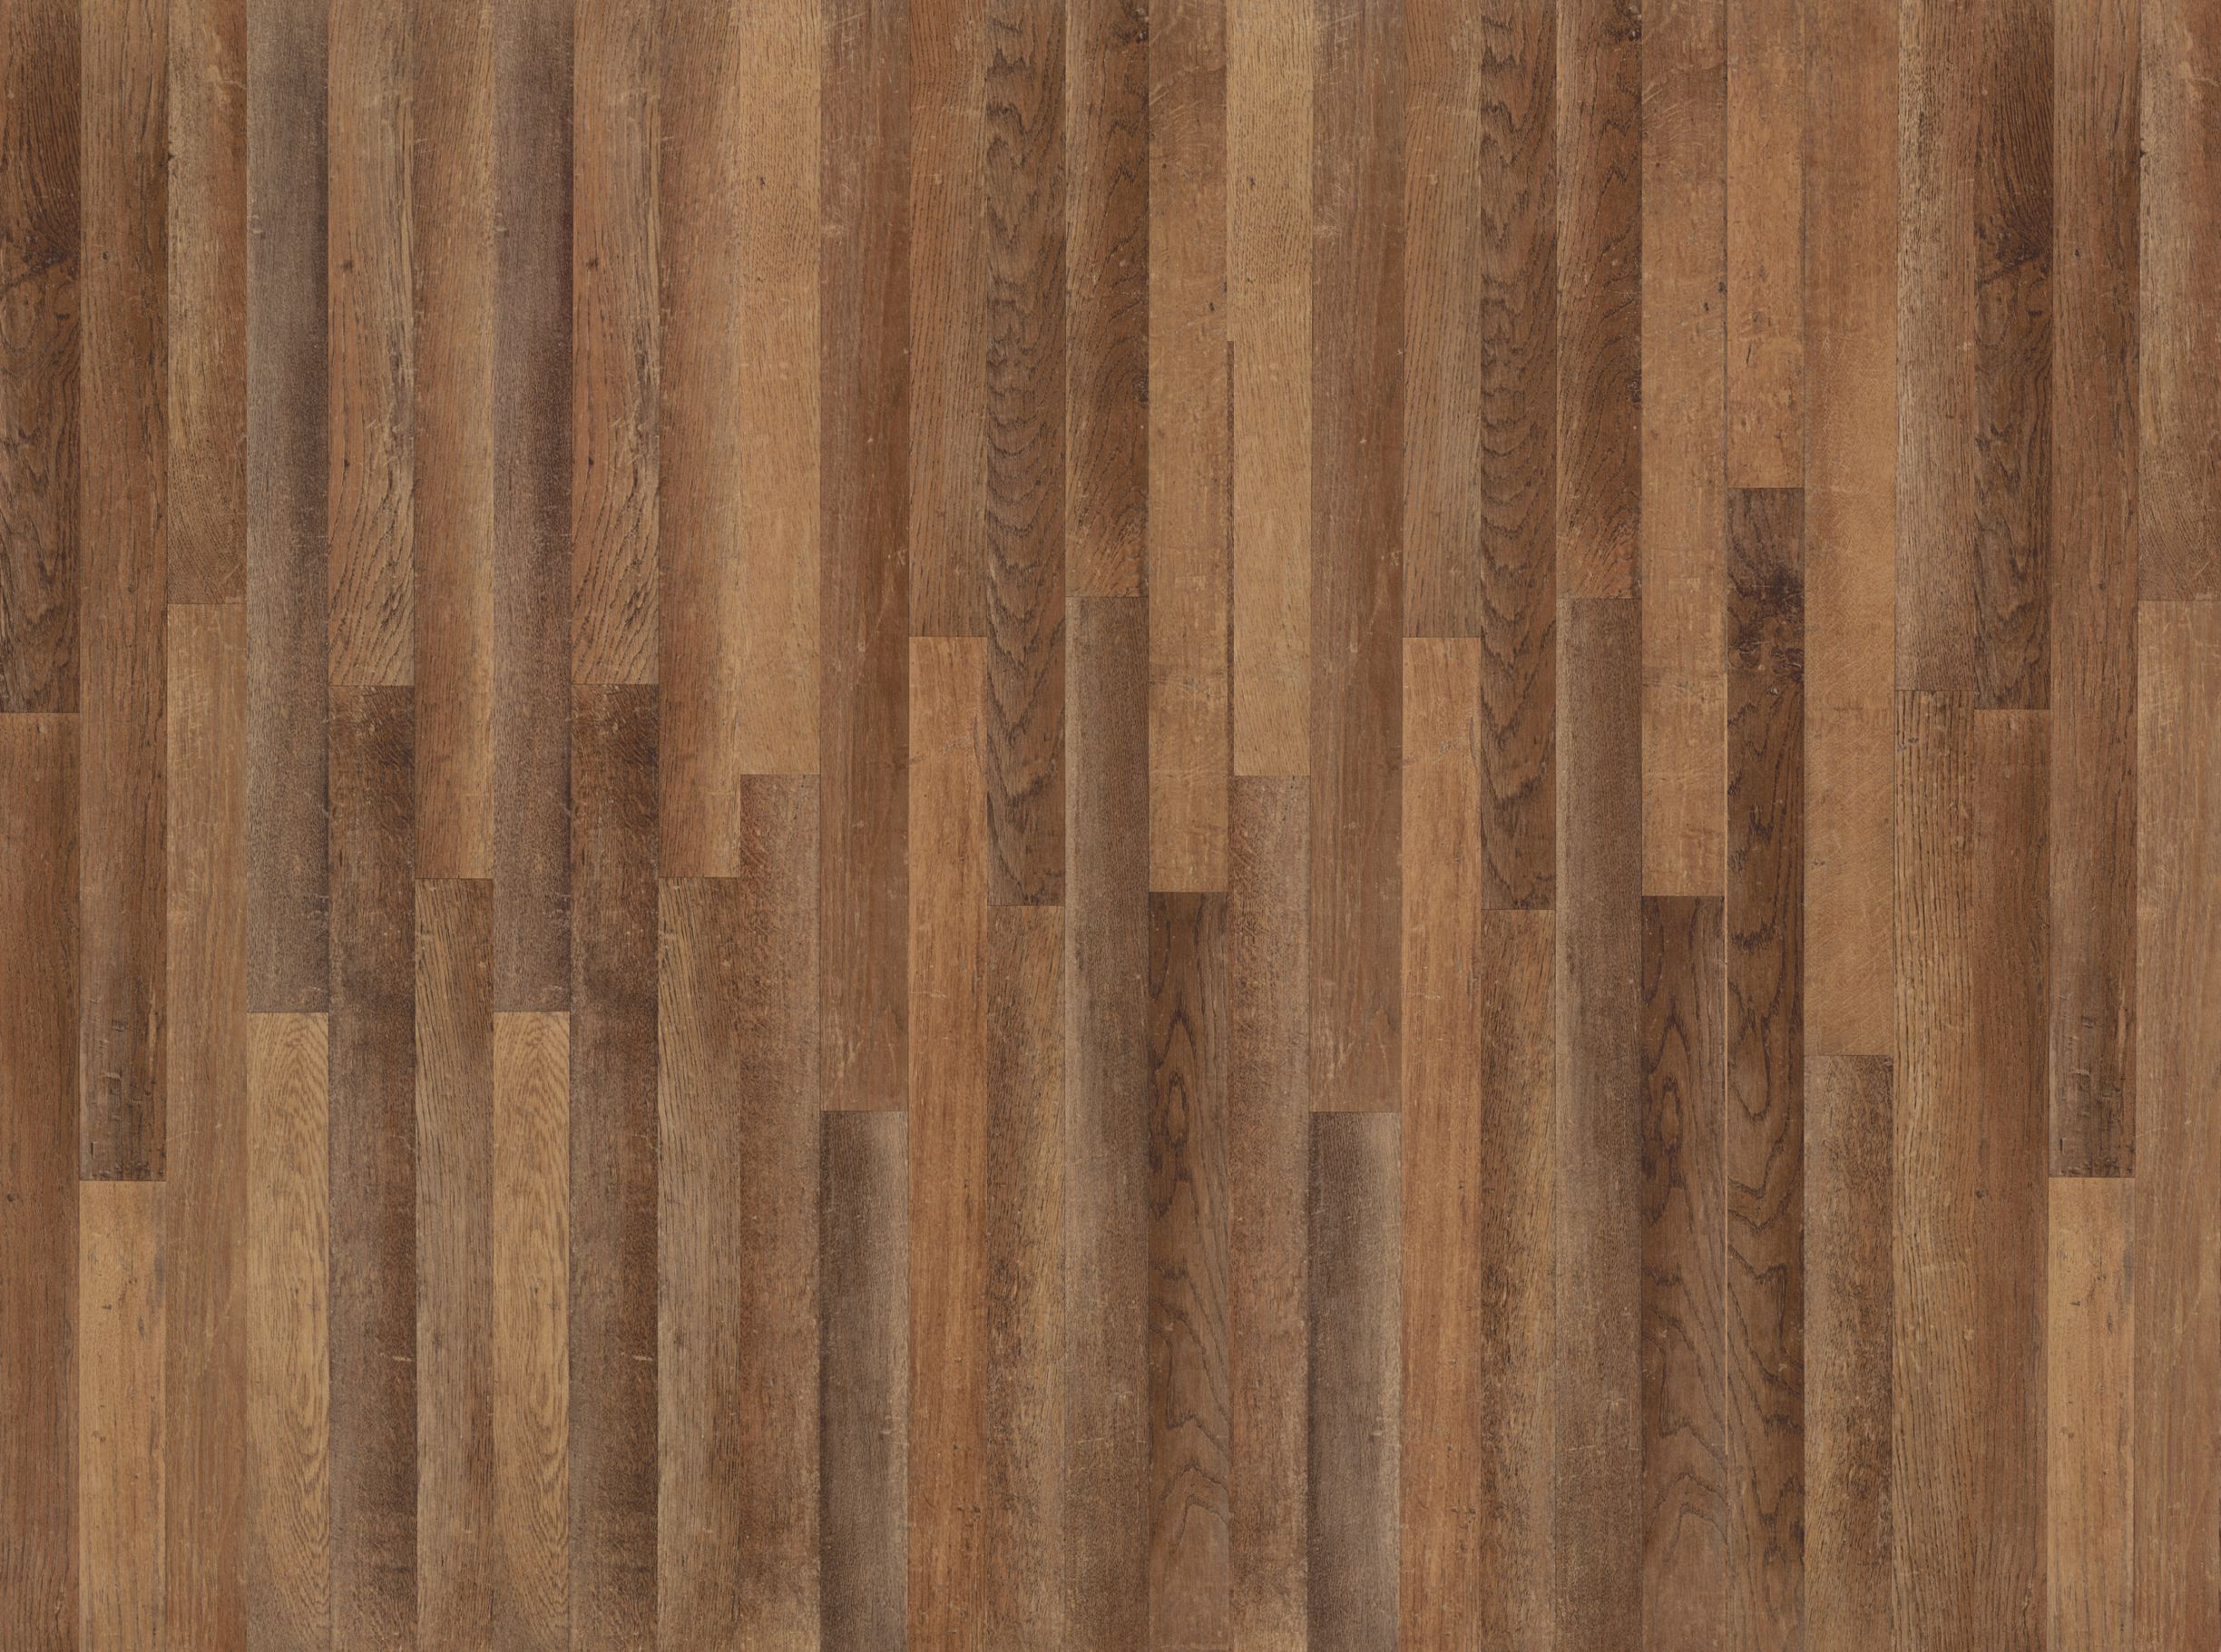 Bamboo Hardwood Flooring Glossy Brown Linoleum Hard Wood